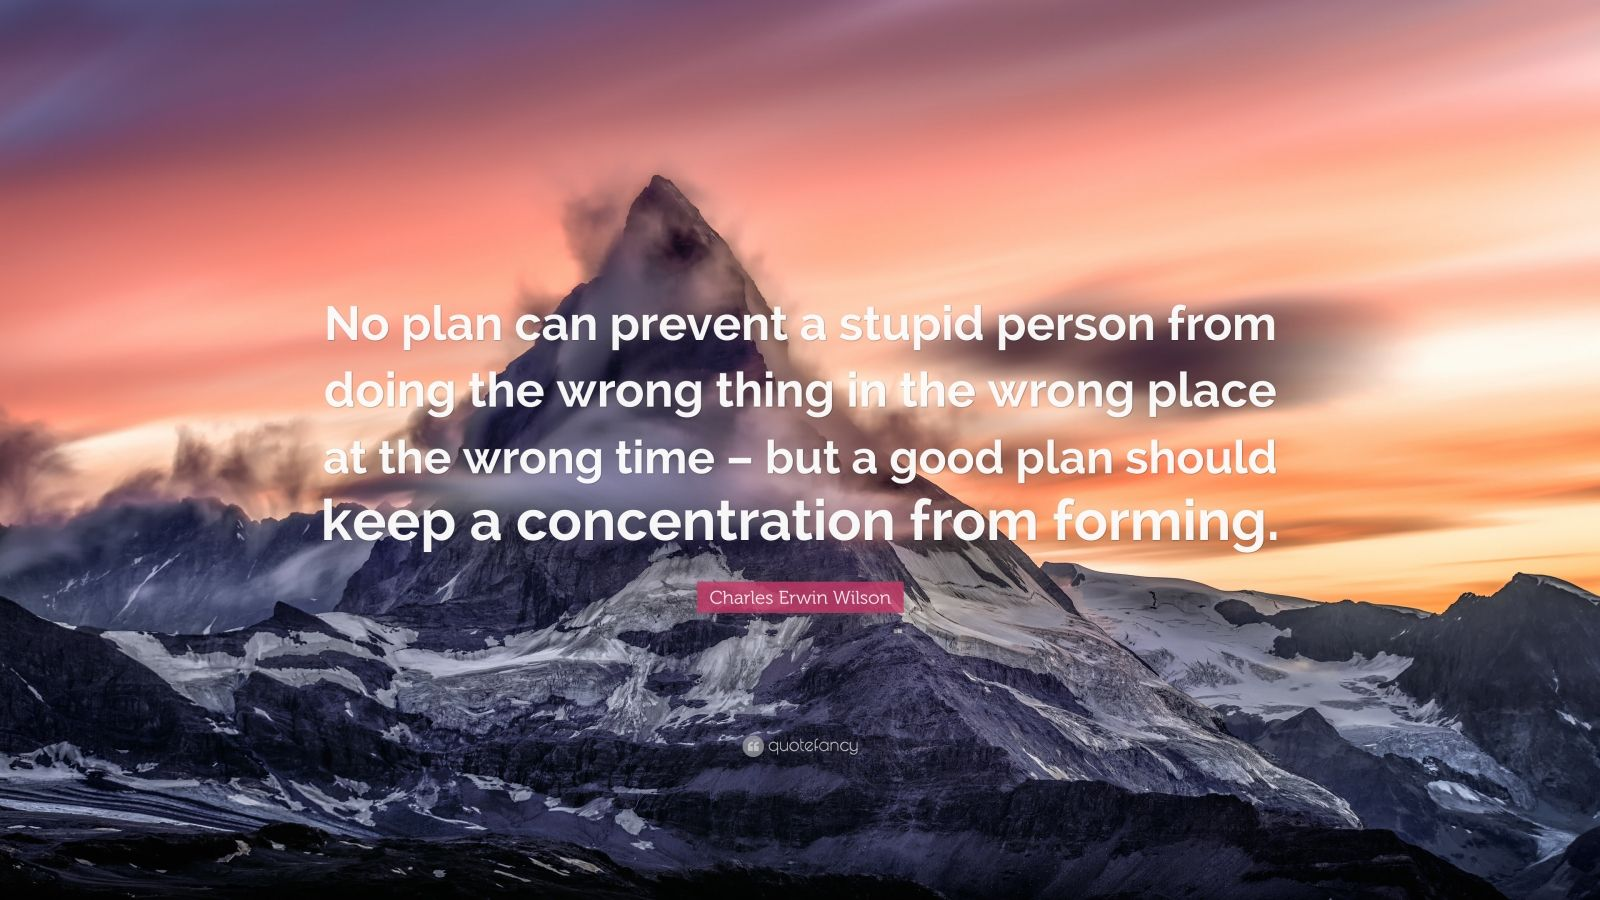 """Charles Erwin Wilson Quote: """"No plan can prevent a stupid person from doing the wrong thing in the wrong place at the wrong time – but a good plan should keep a concentration from forming."""""""